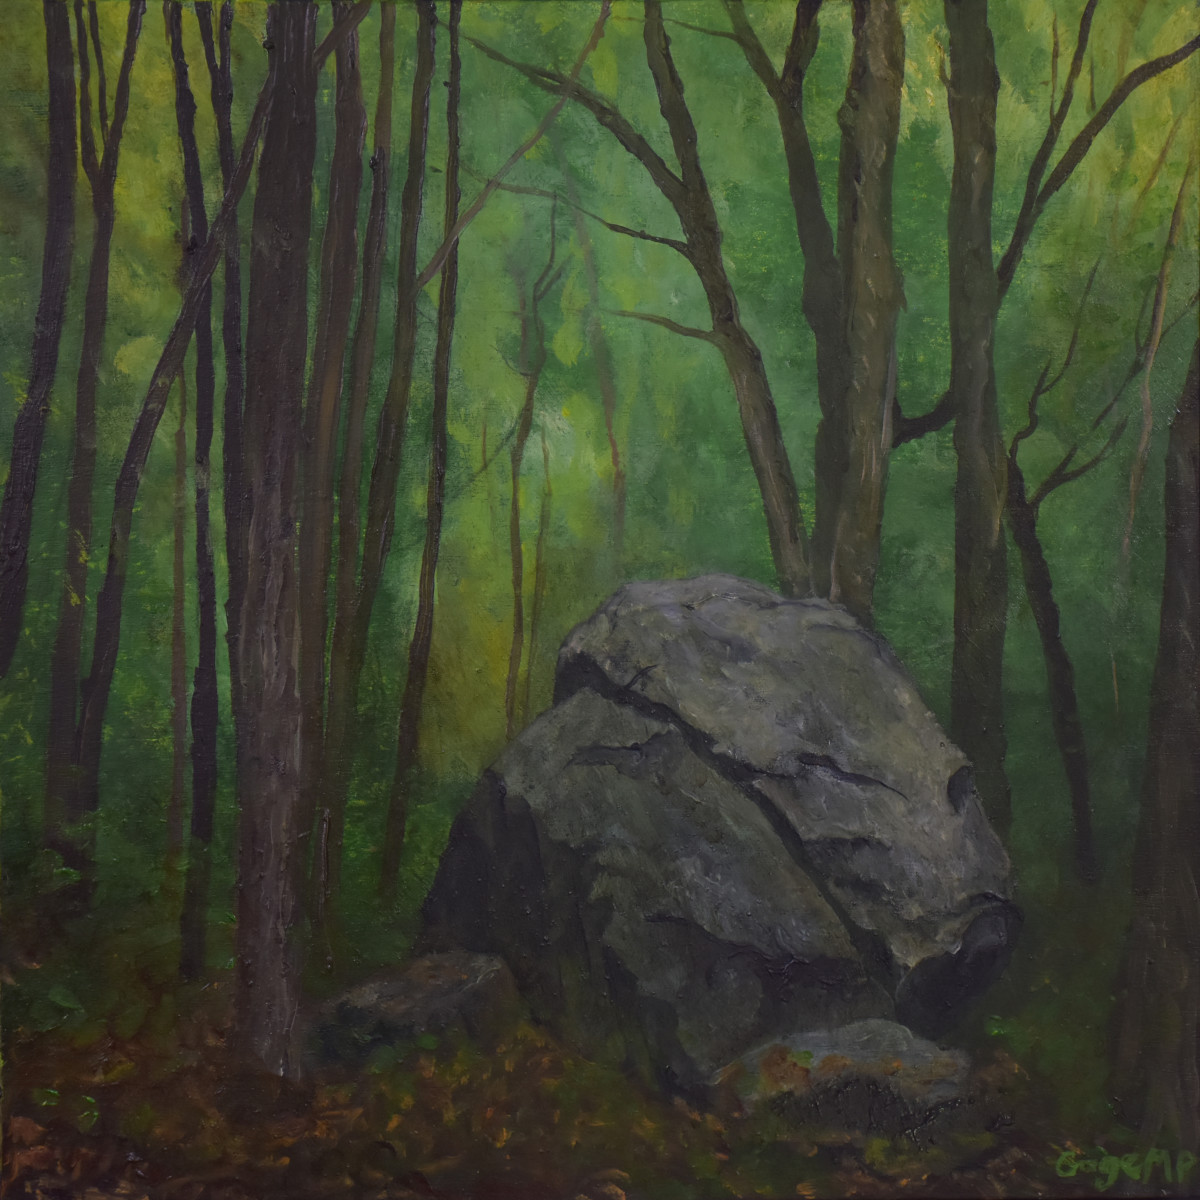 Lincoln Woods 18 - 10 x 10 - Oil on board